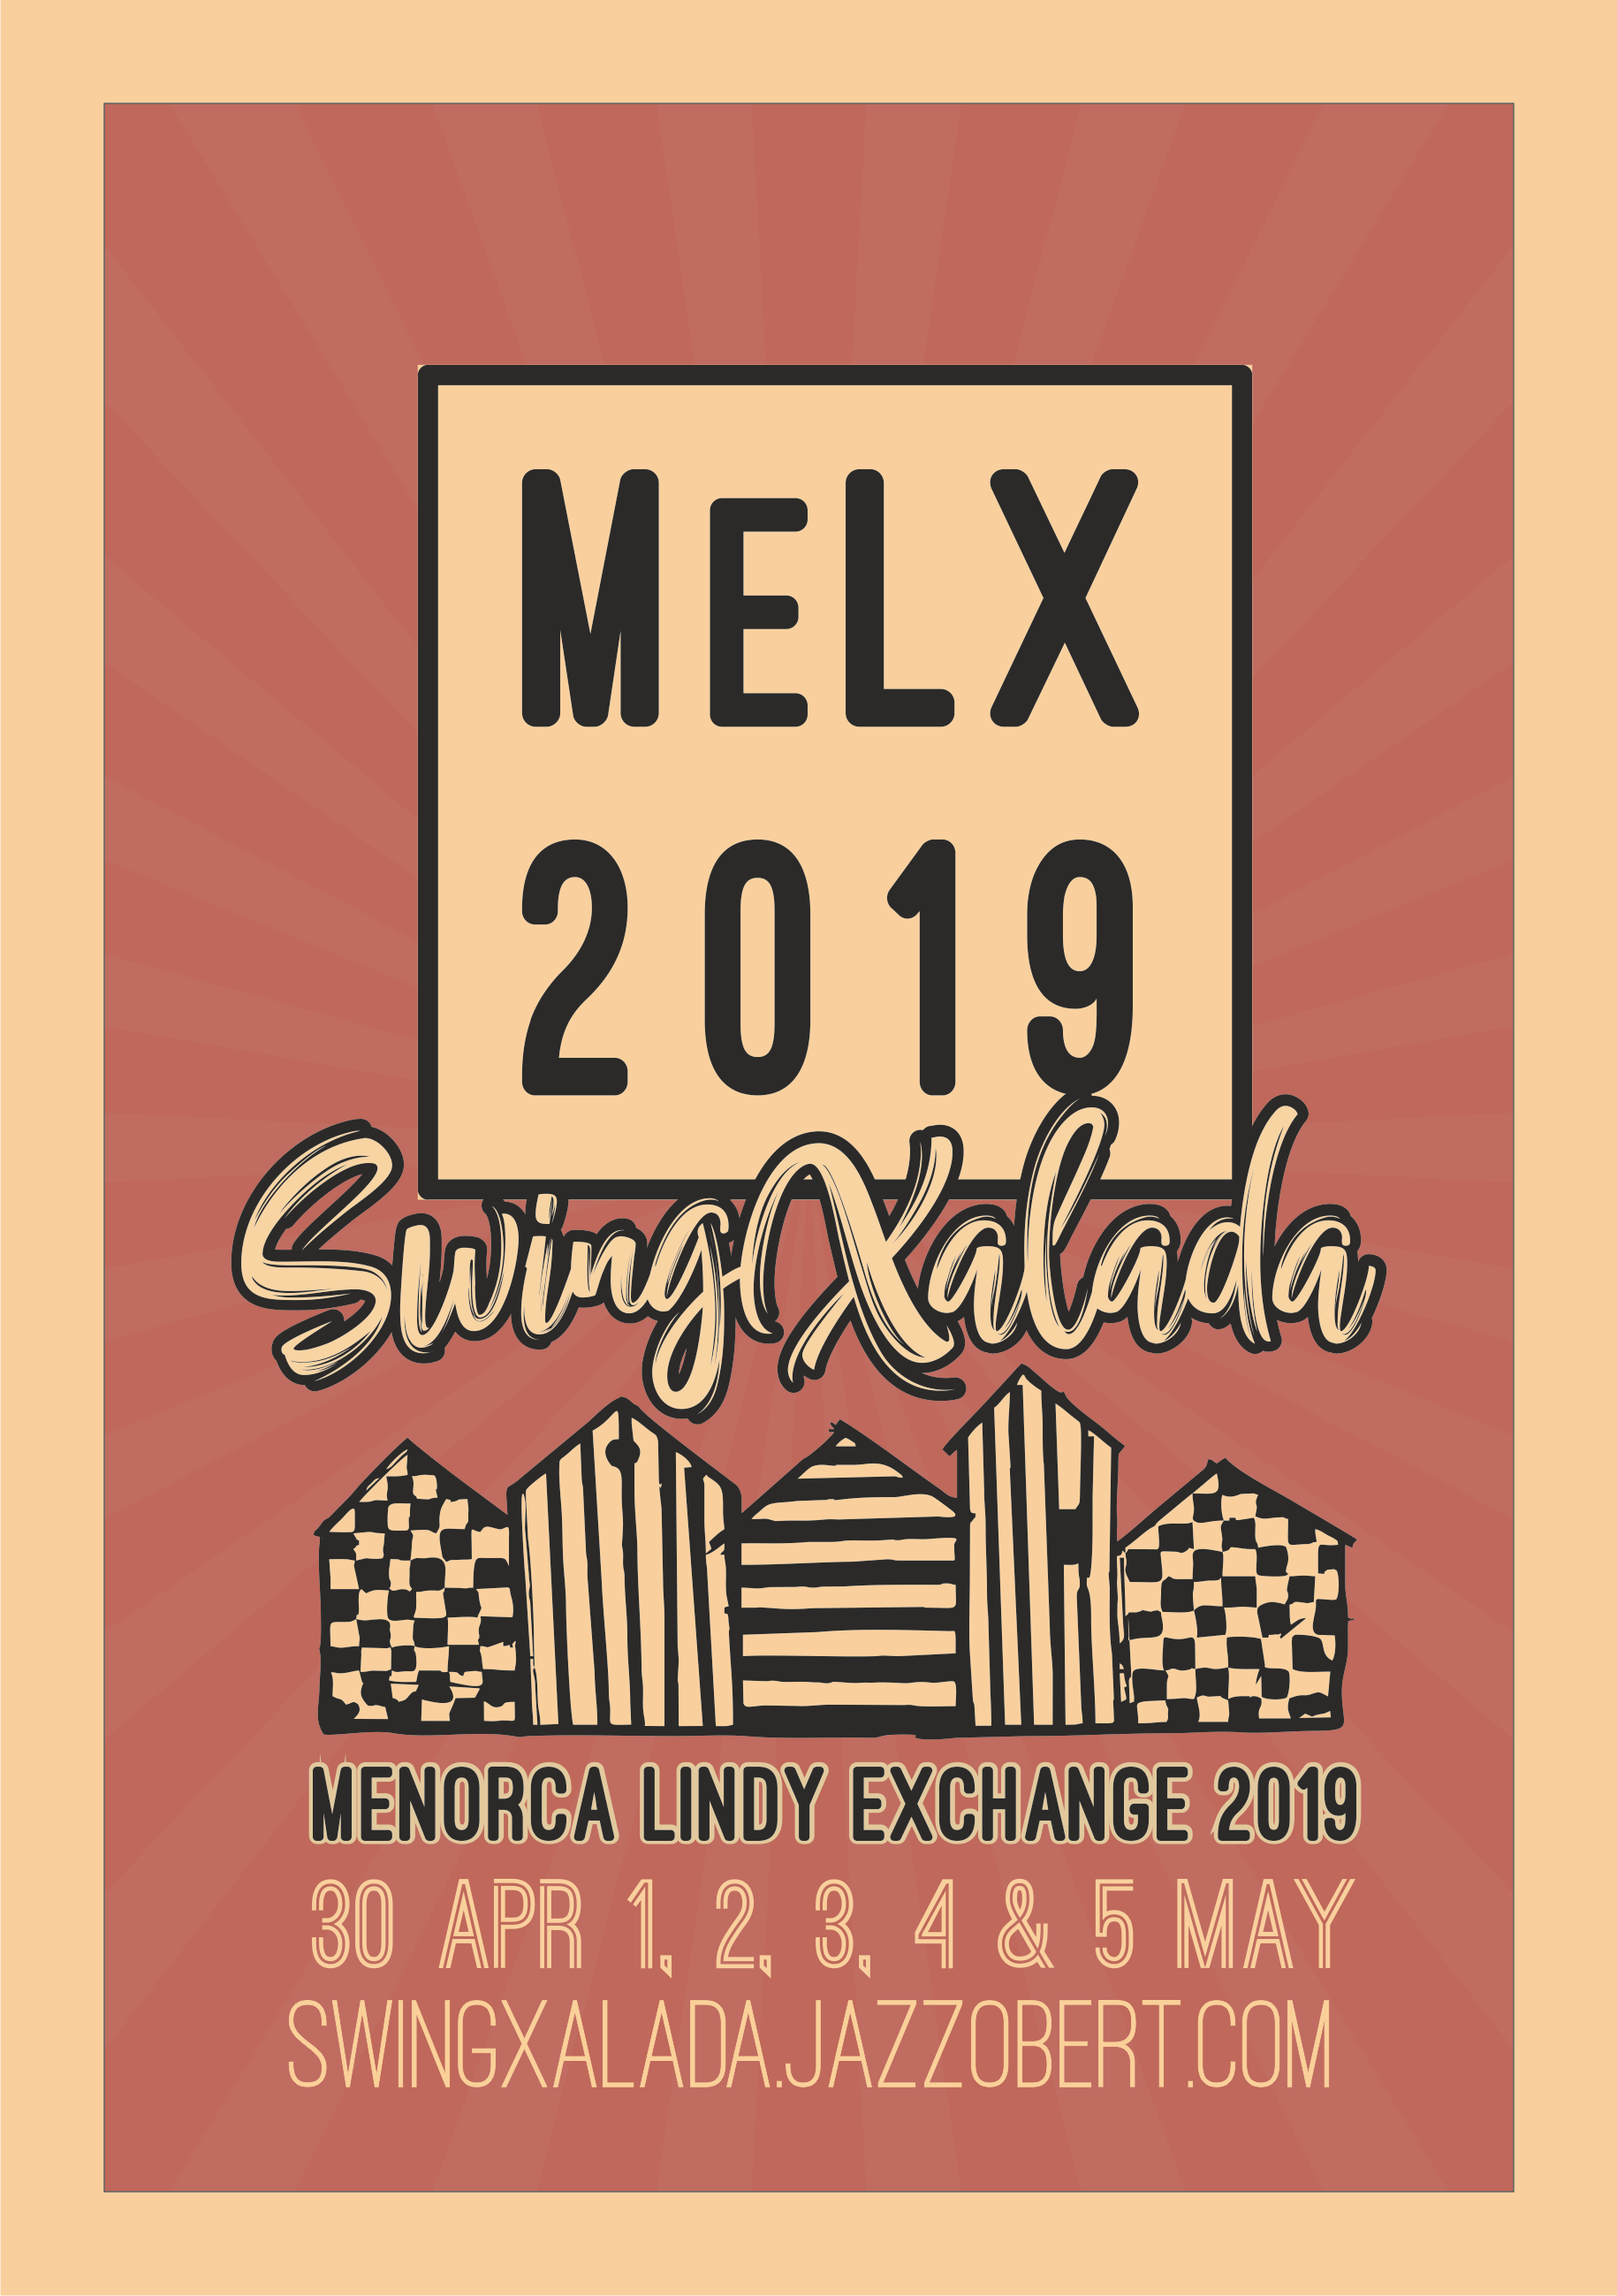 Menorca Lindy Exchange